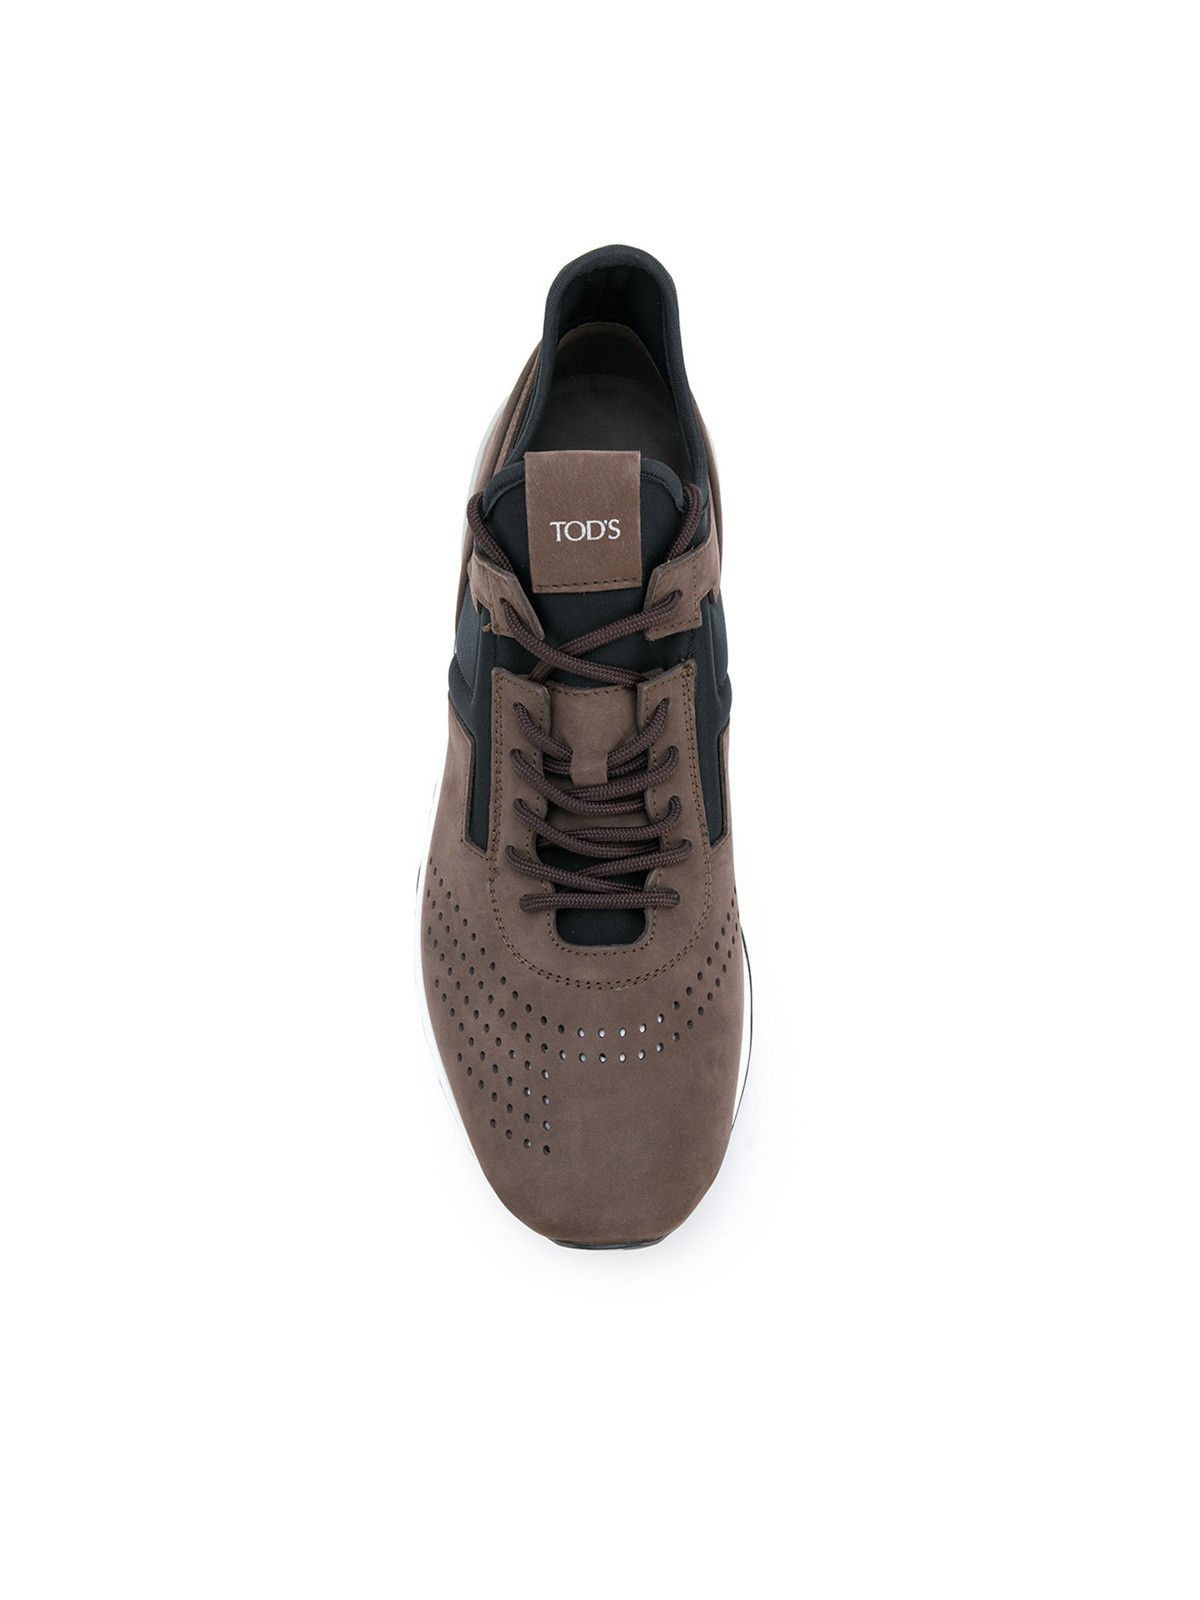 005db965f7 tod's SUEDE SNEAKERS available on montiboutique.com - 21980